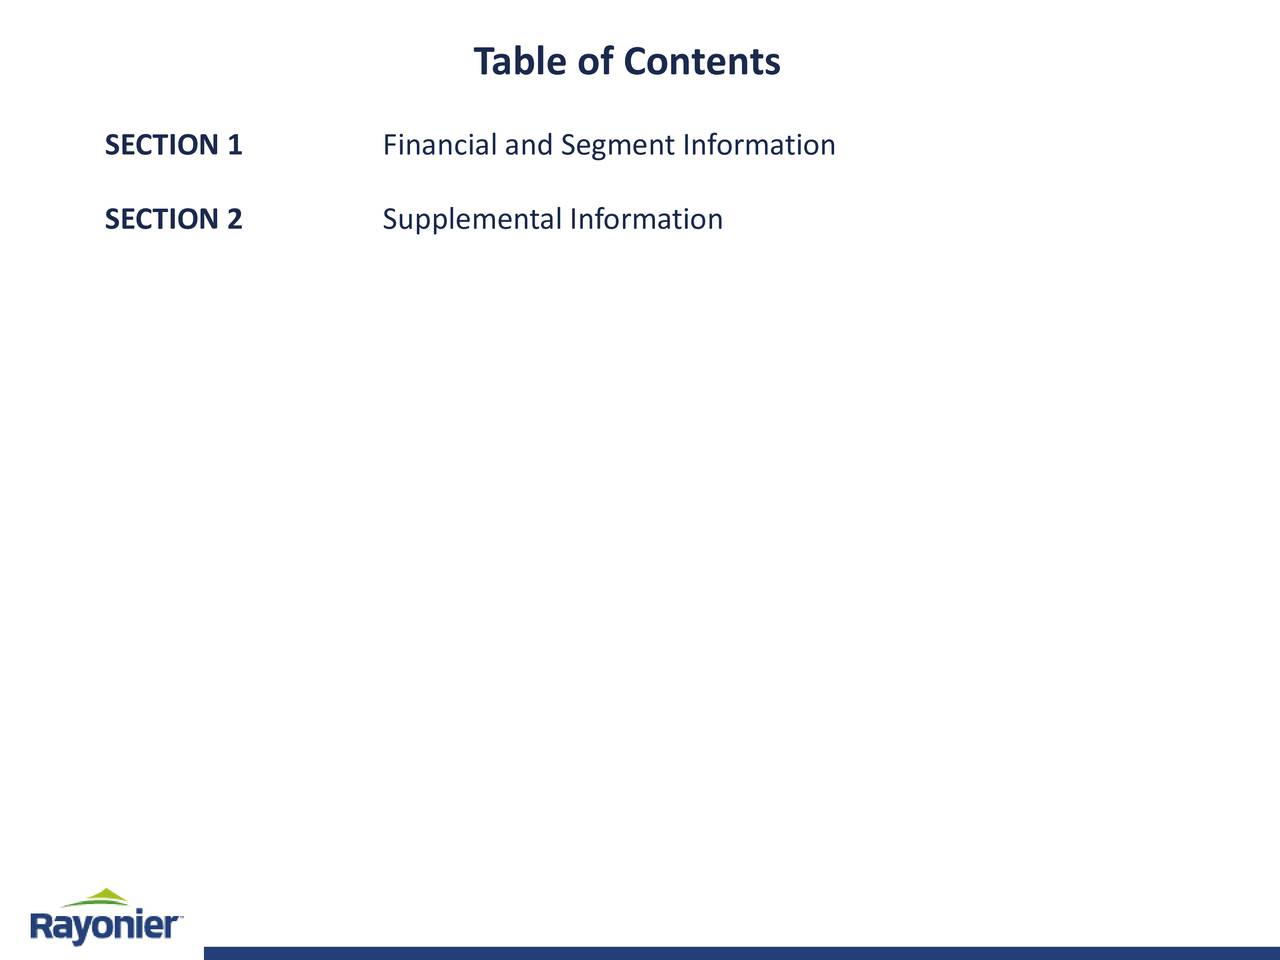 SECTION 1 Financial and Segment Information SECTION 2 Supplemental Information